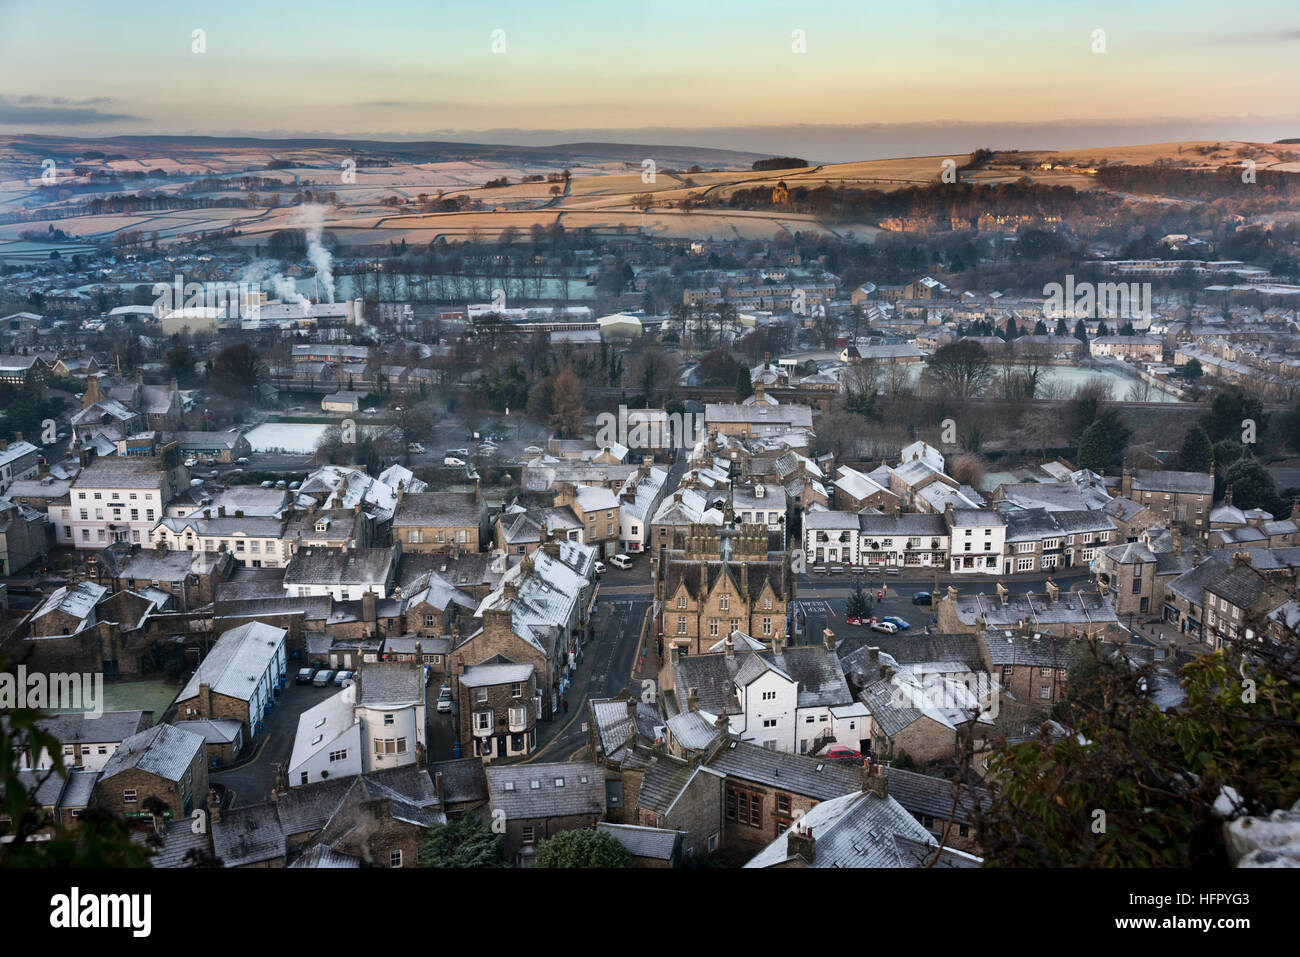 Frosty Winter morning, looking over the market town of Settle and village of Giggleswick, North Yorkshire, UK. - Stock Image